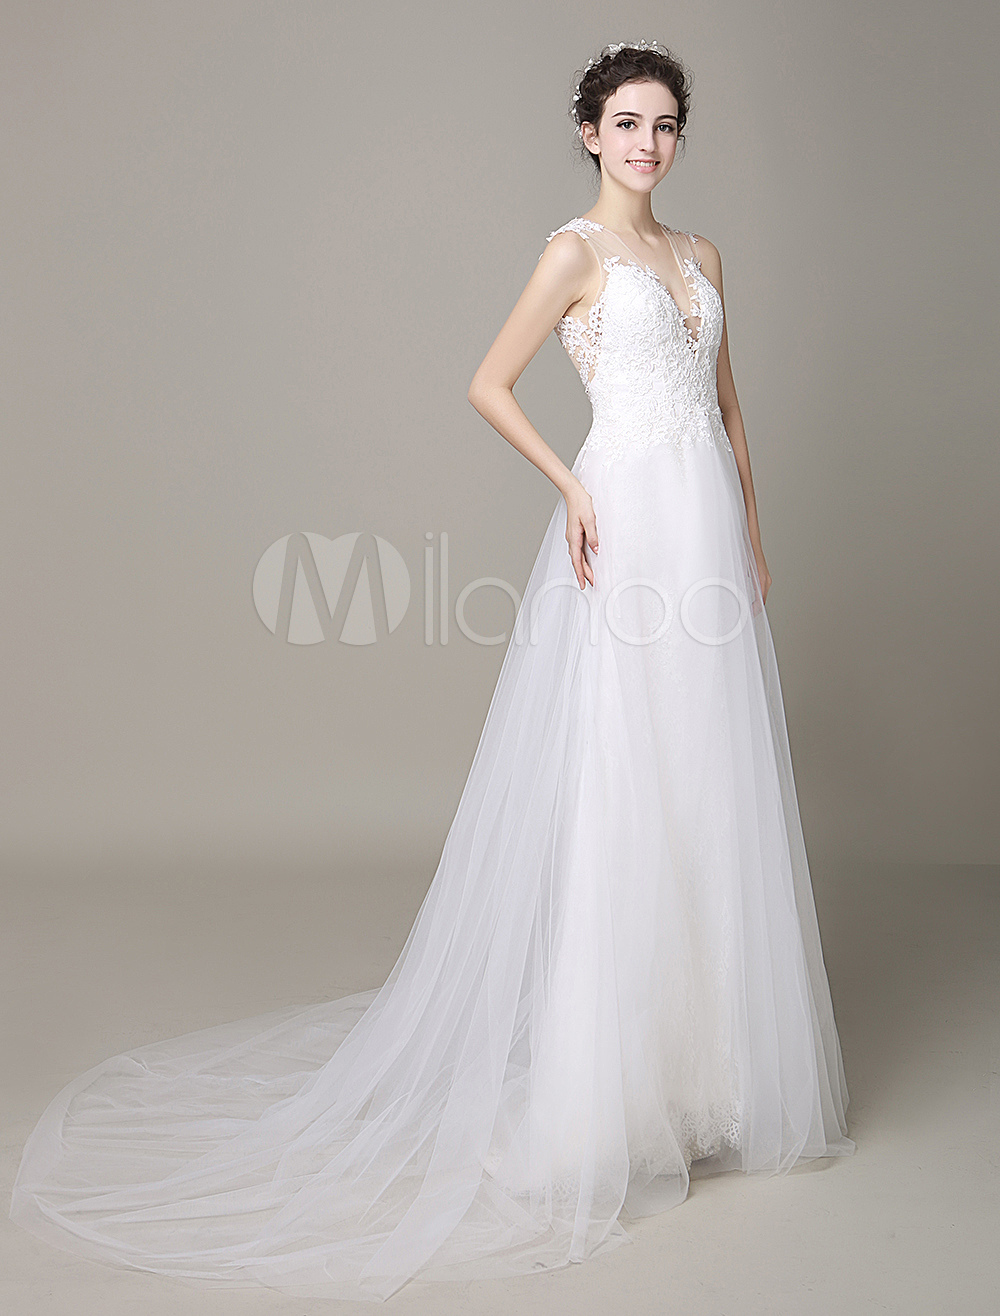 Ivory Wedding Dress Illusion Deep-V Strapless Lace Tulle Wedding Gown Milanoo